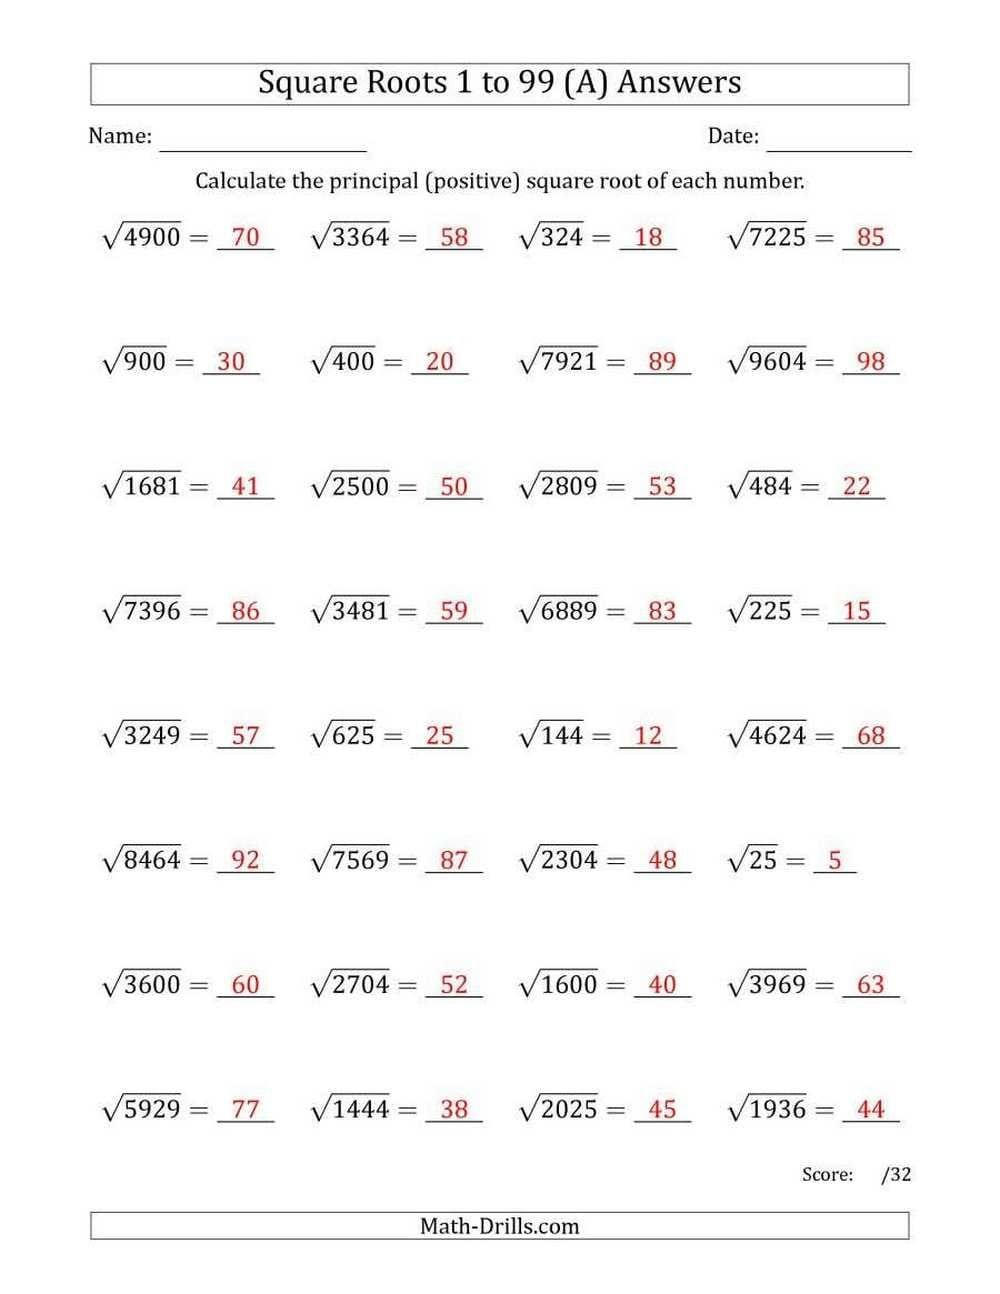 Square Root Worksheets 8Th Grade  Briefencounters Throughout Square Root Worksheets 8Th Grade